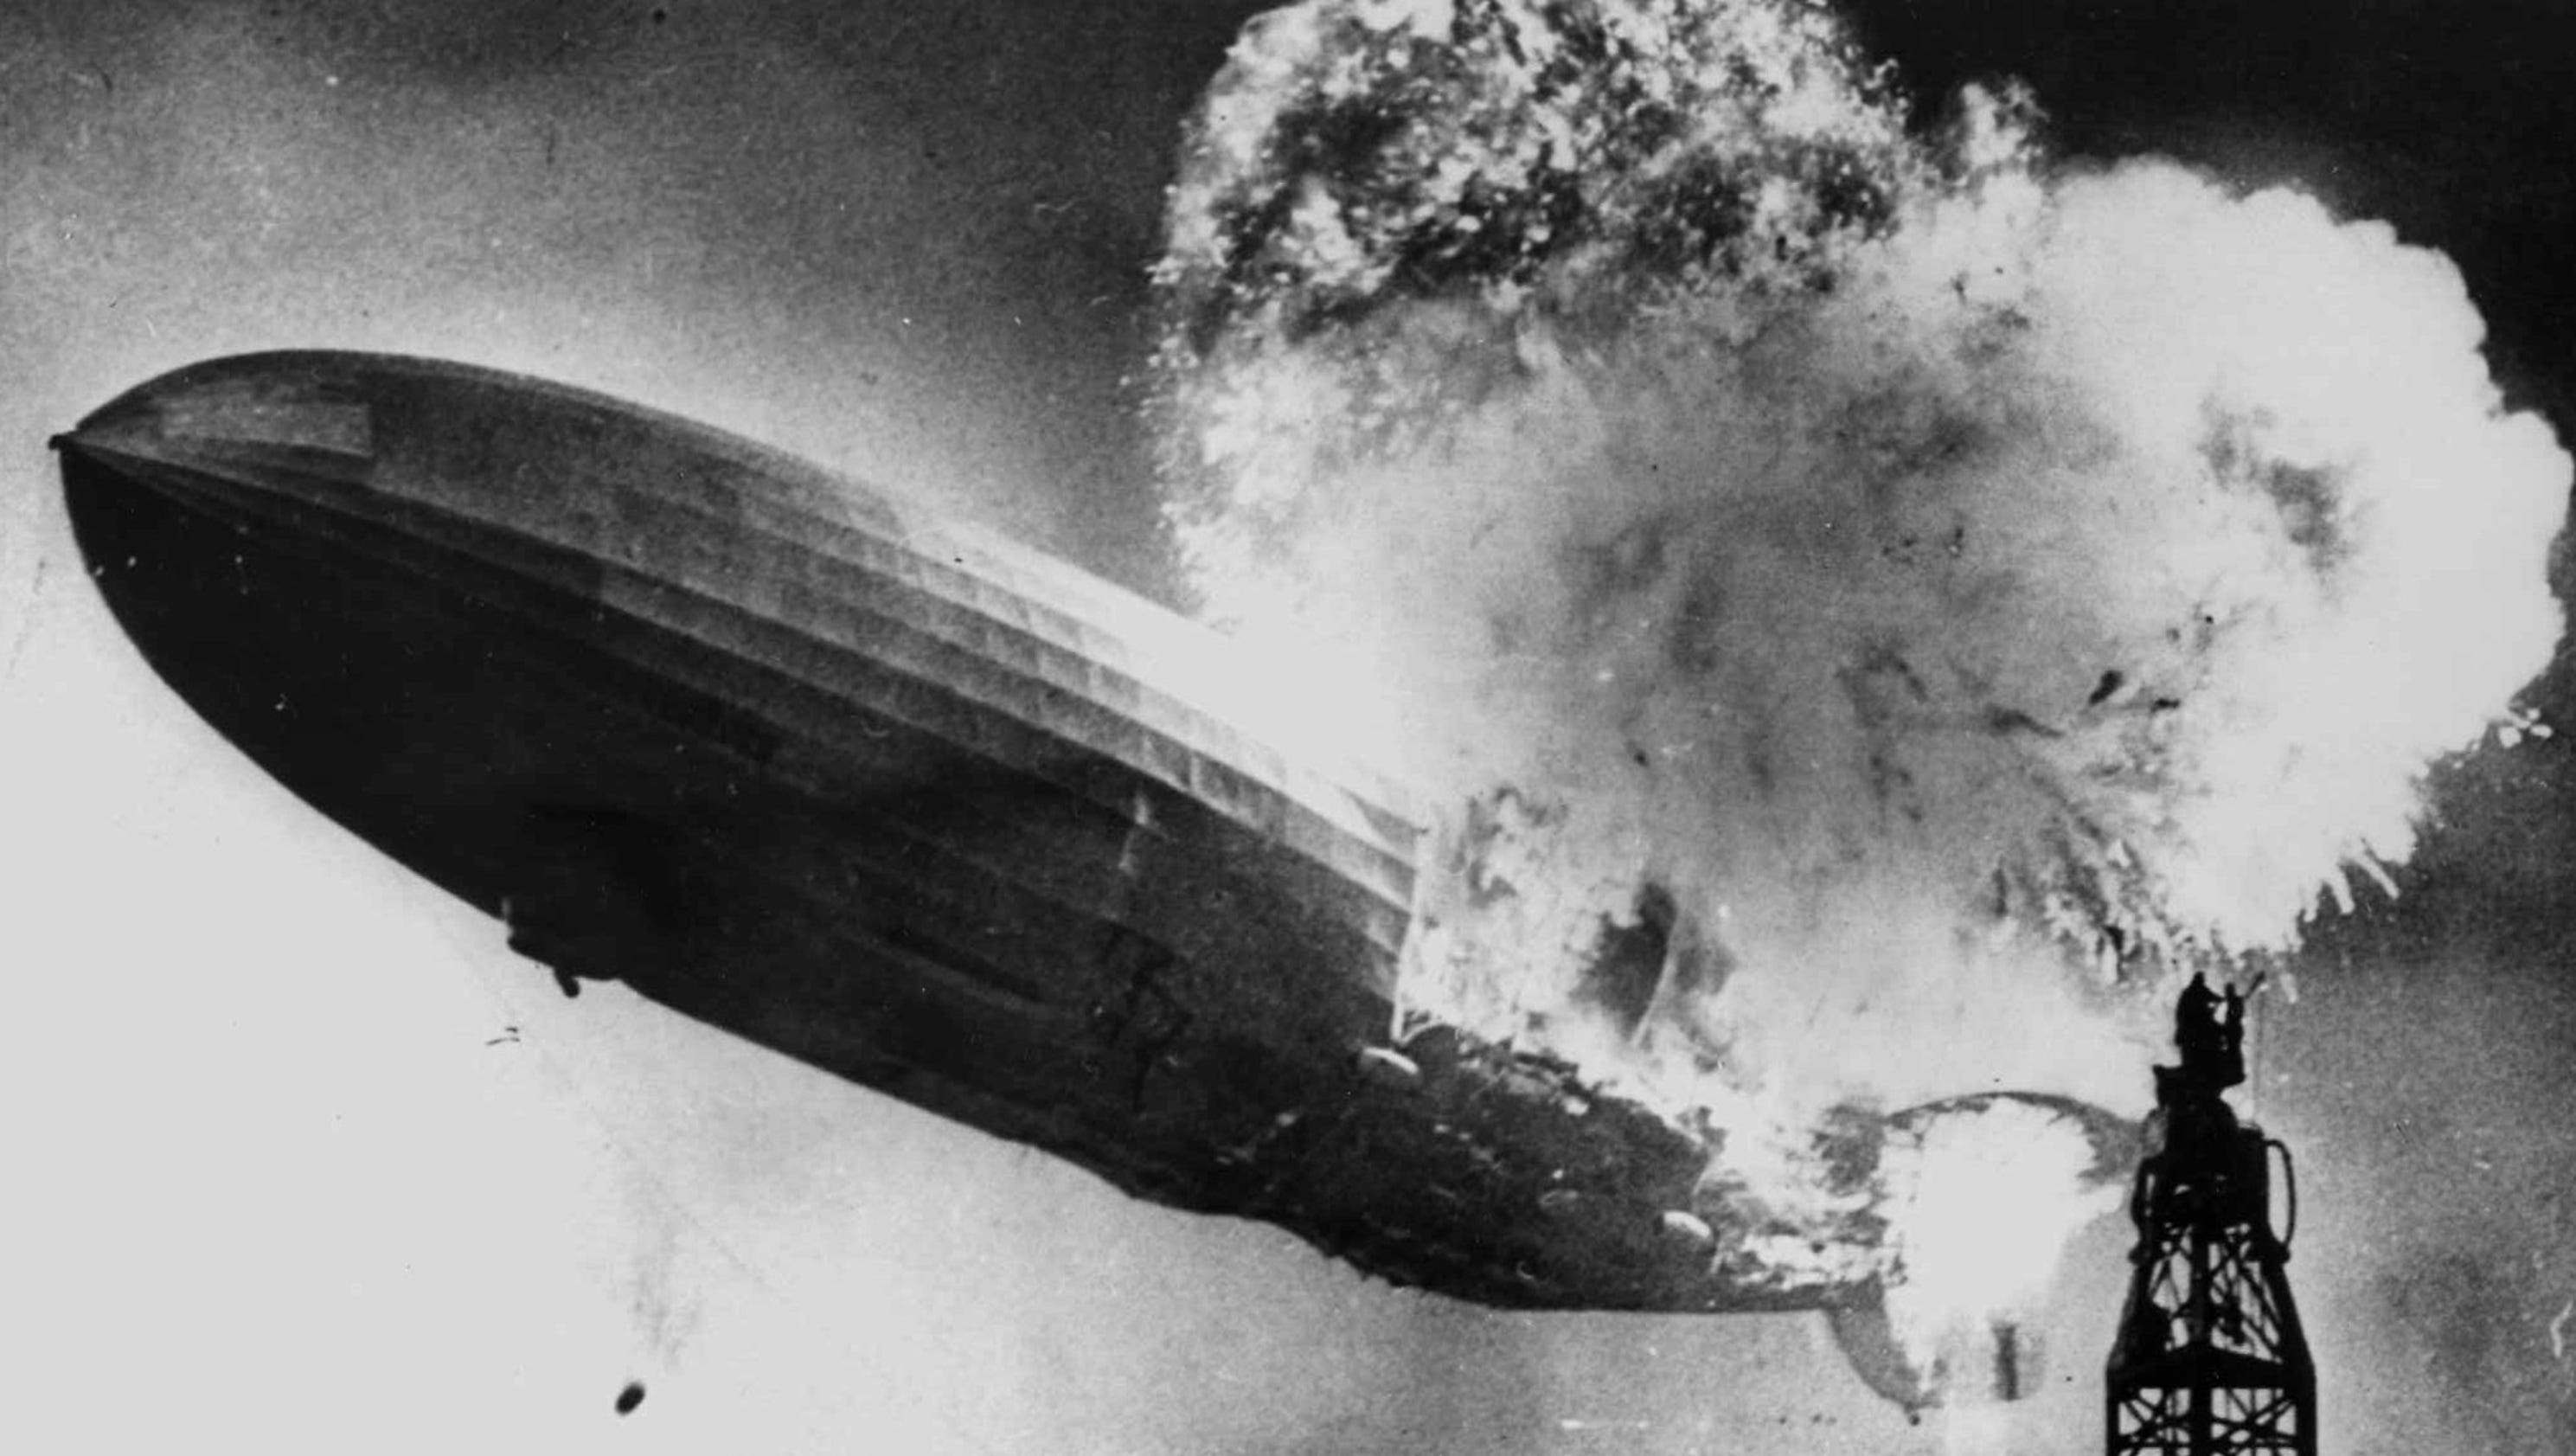 an analysis of the hindenburg The hindenburg, free study guides and book notes including comprehensive chapter analysis, complete summary analysis, author biography information, character profiles, theme analysis, metaphor analysis, and top ten quotes on classic literature.